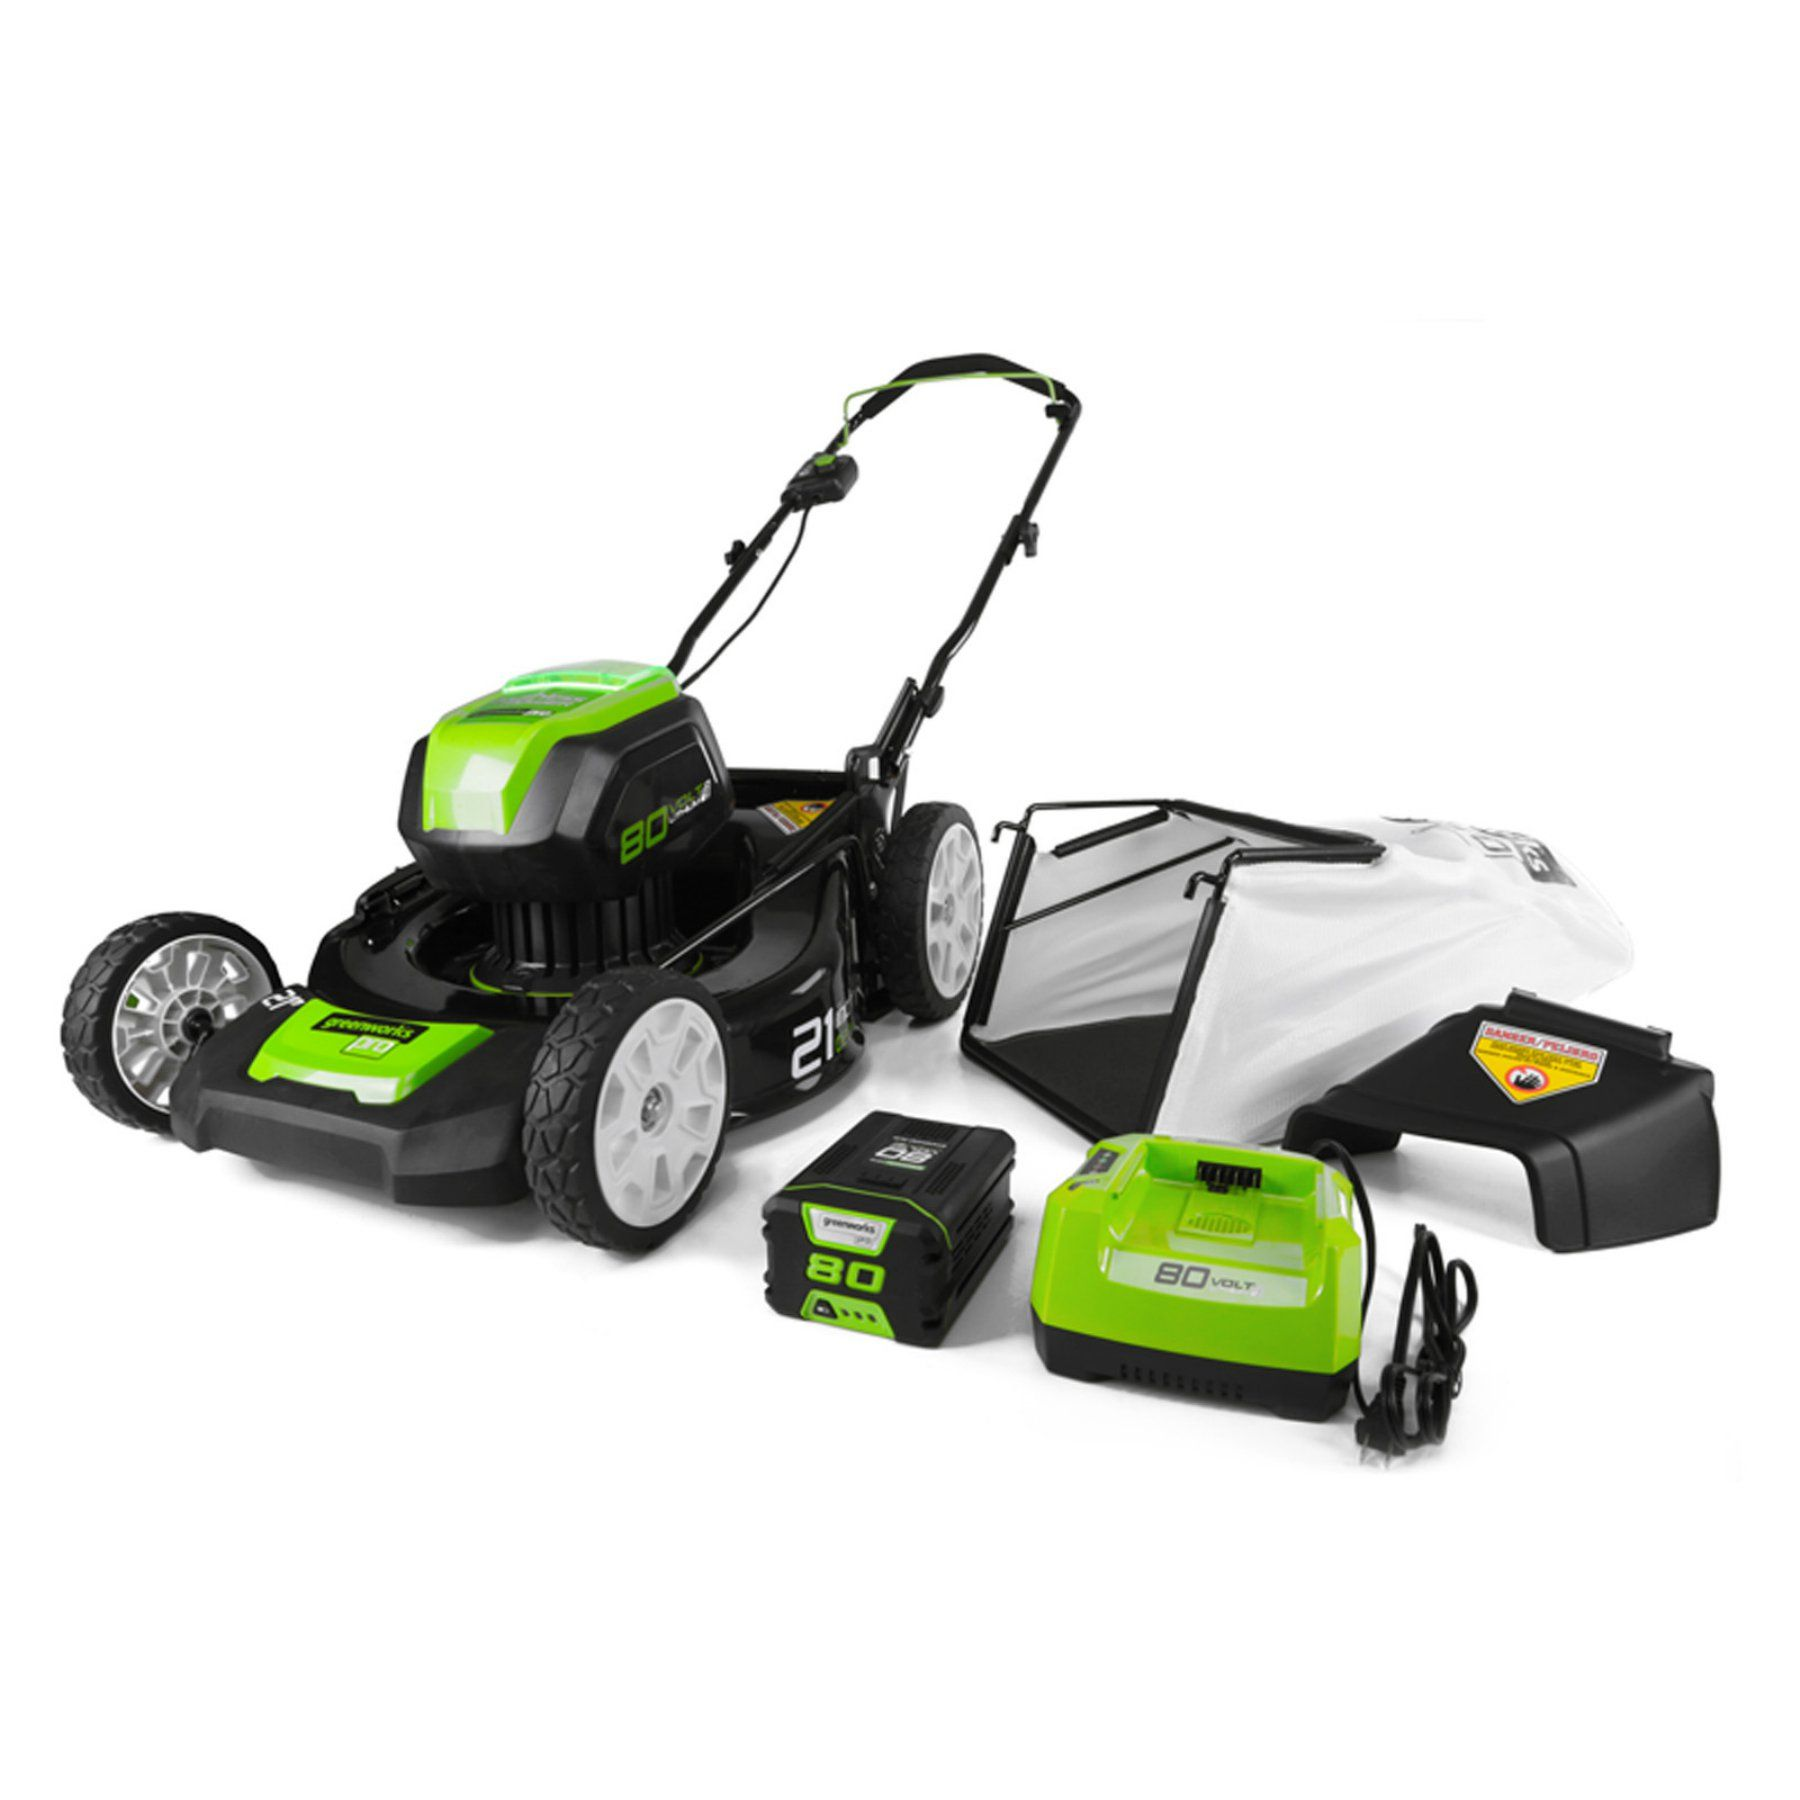 Greenworks 21in. Electric Lawn Mower 2502202 Cordless